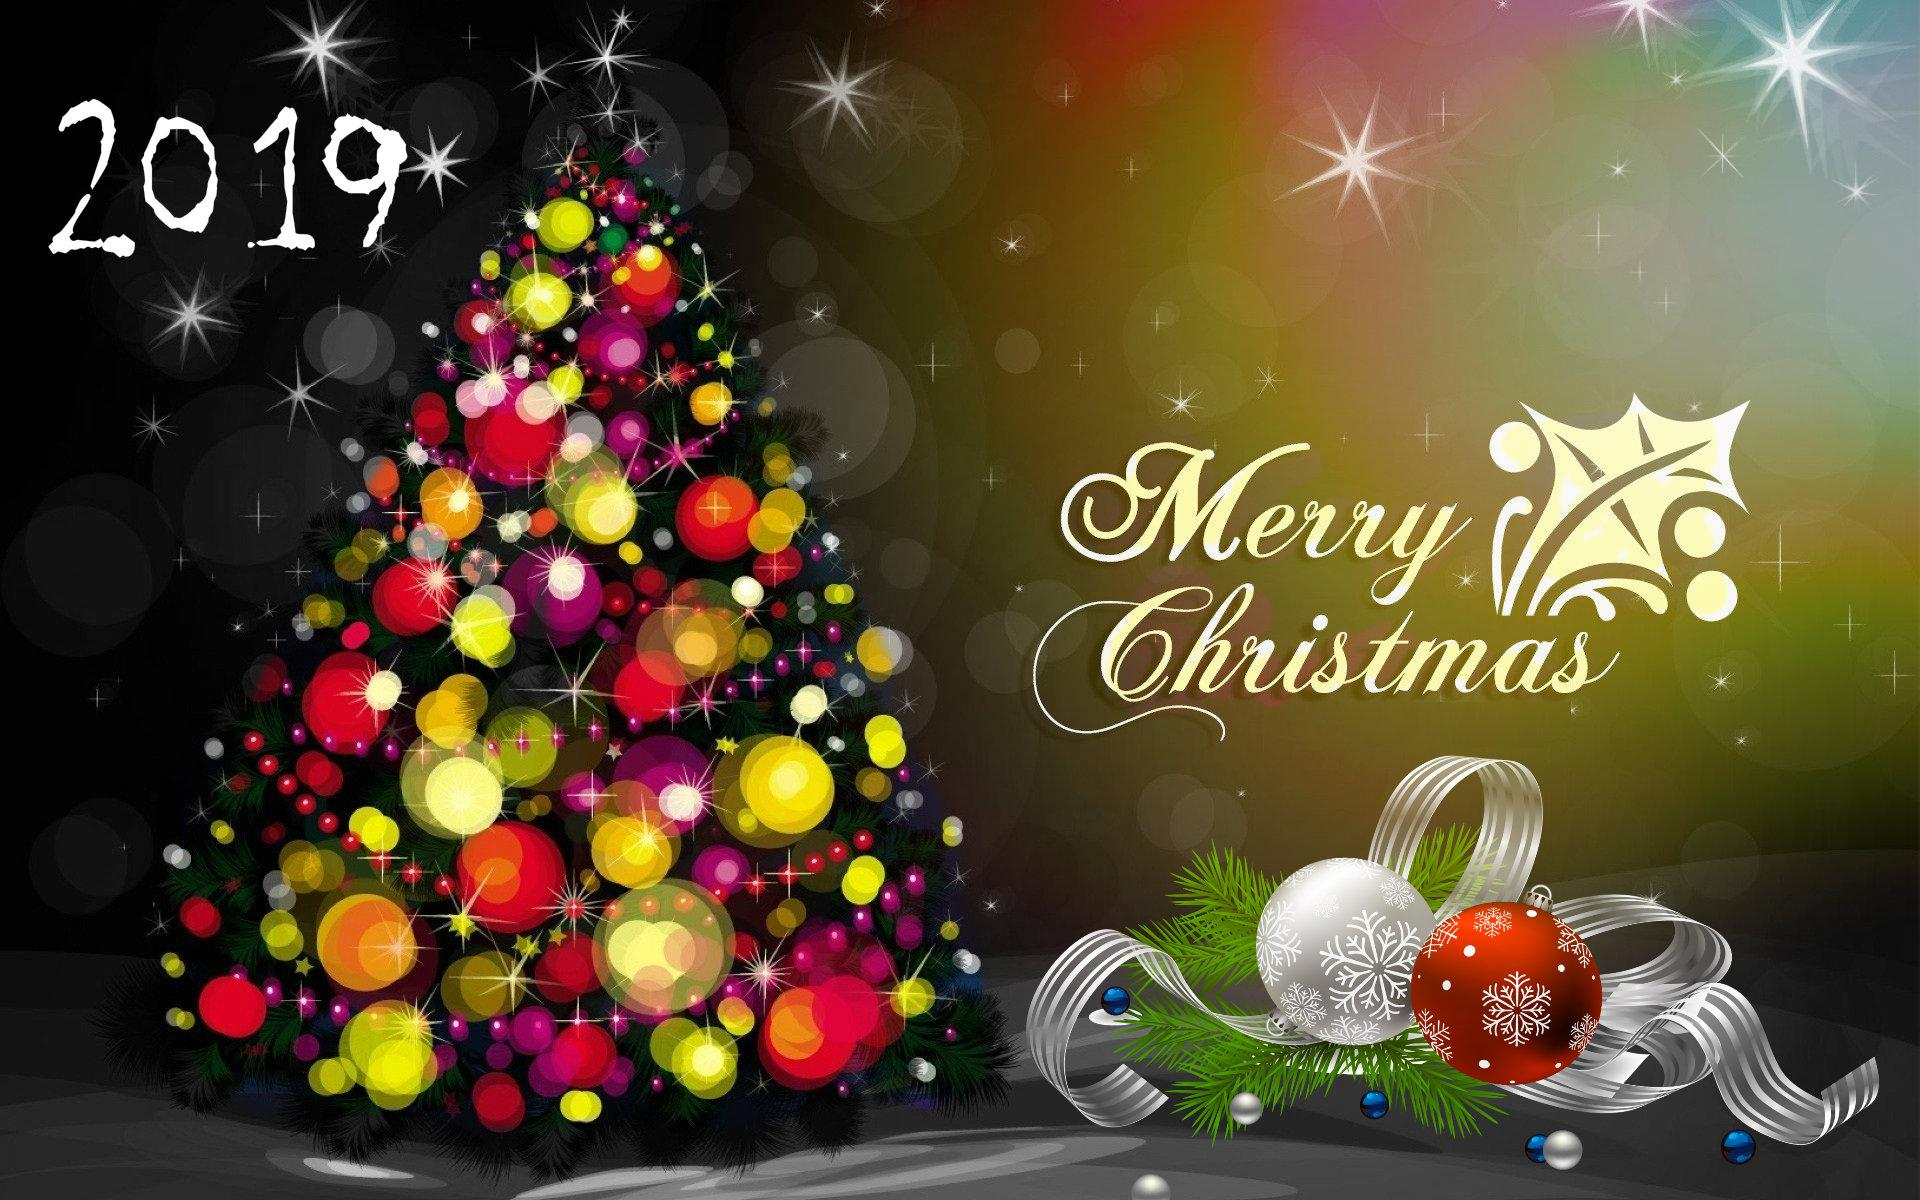 Merry Christmas 2019 Wishes: Merry Christmas 2019 Wishes, Quotes